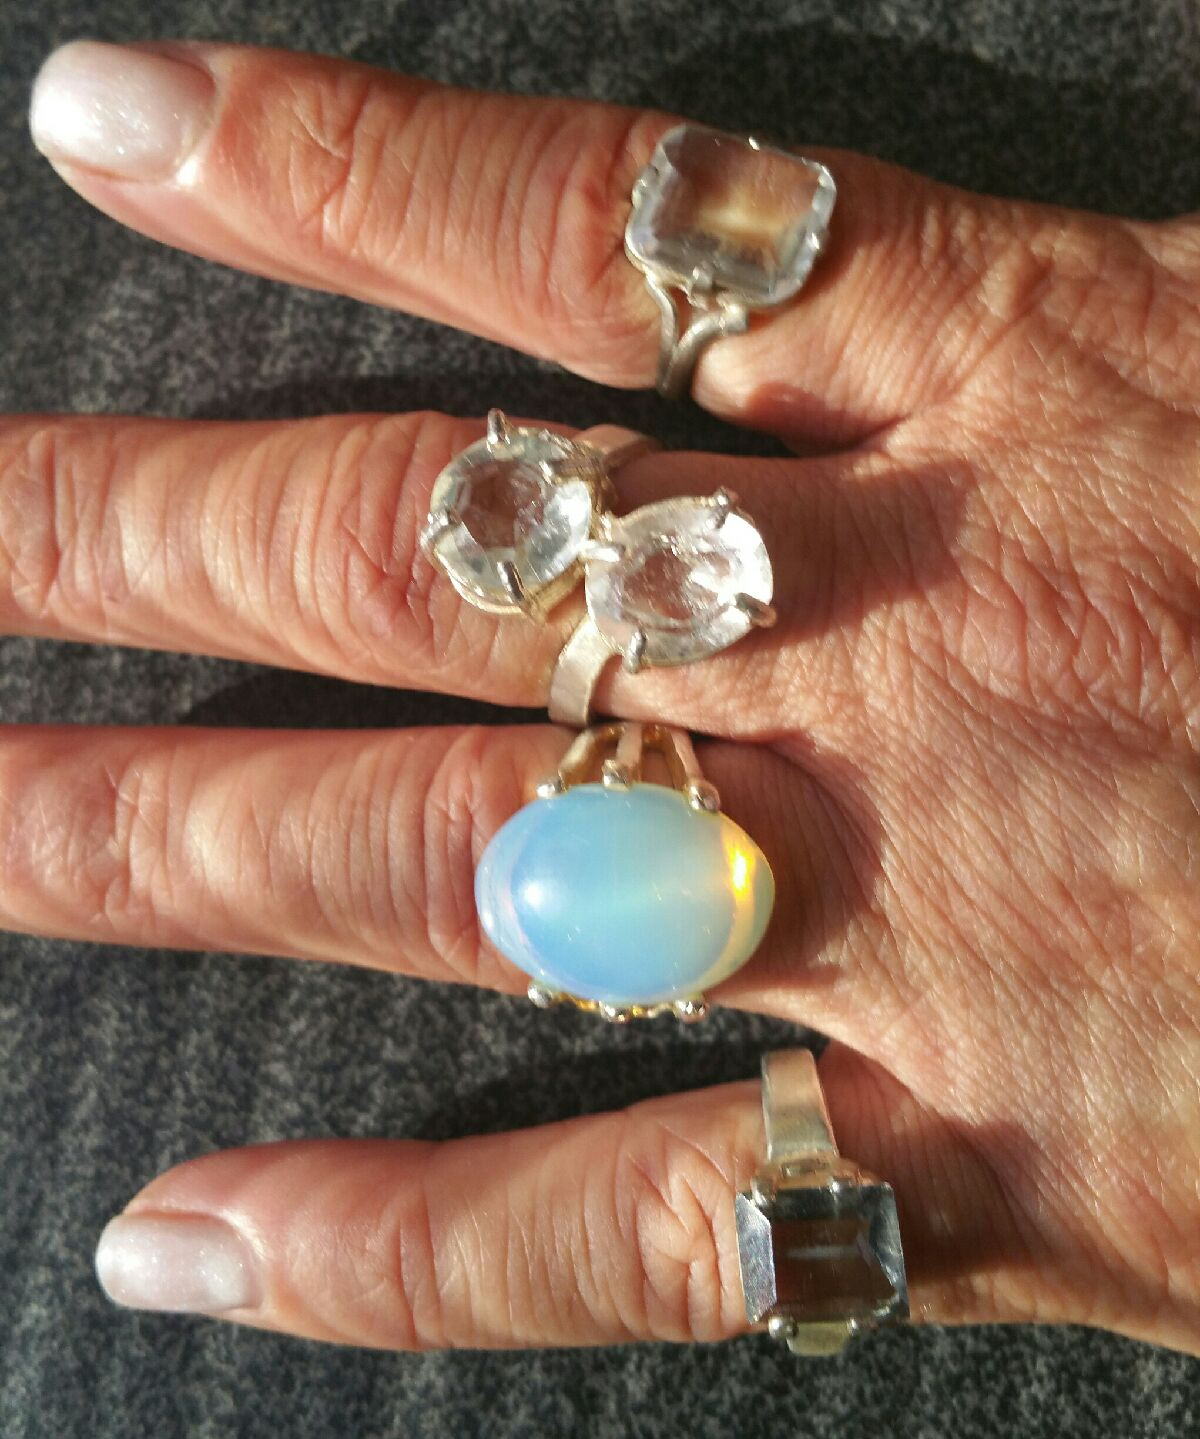 Casa Rings *NEW* Gorgeous Powerful Stones - Only 1 Of Each Available!